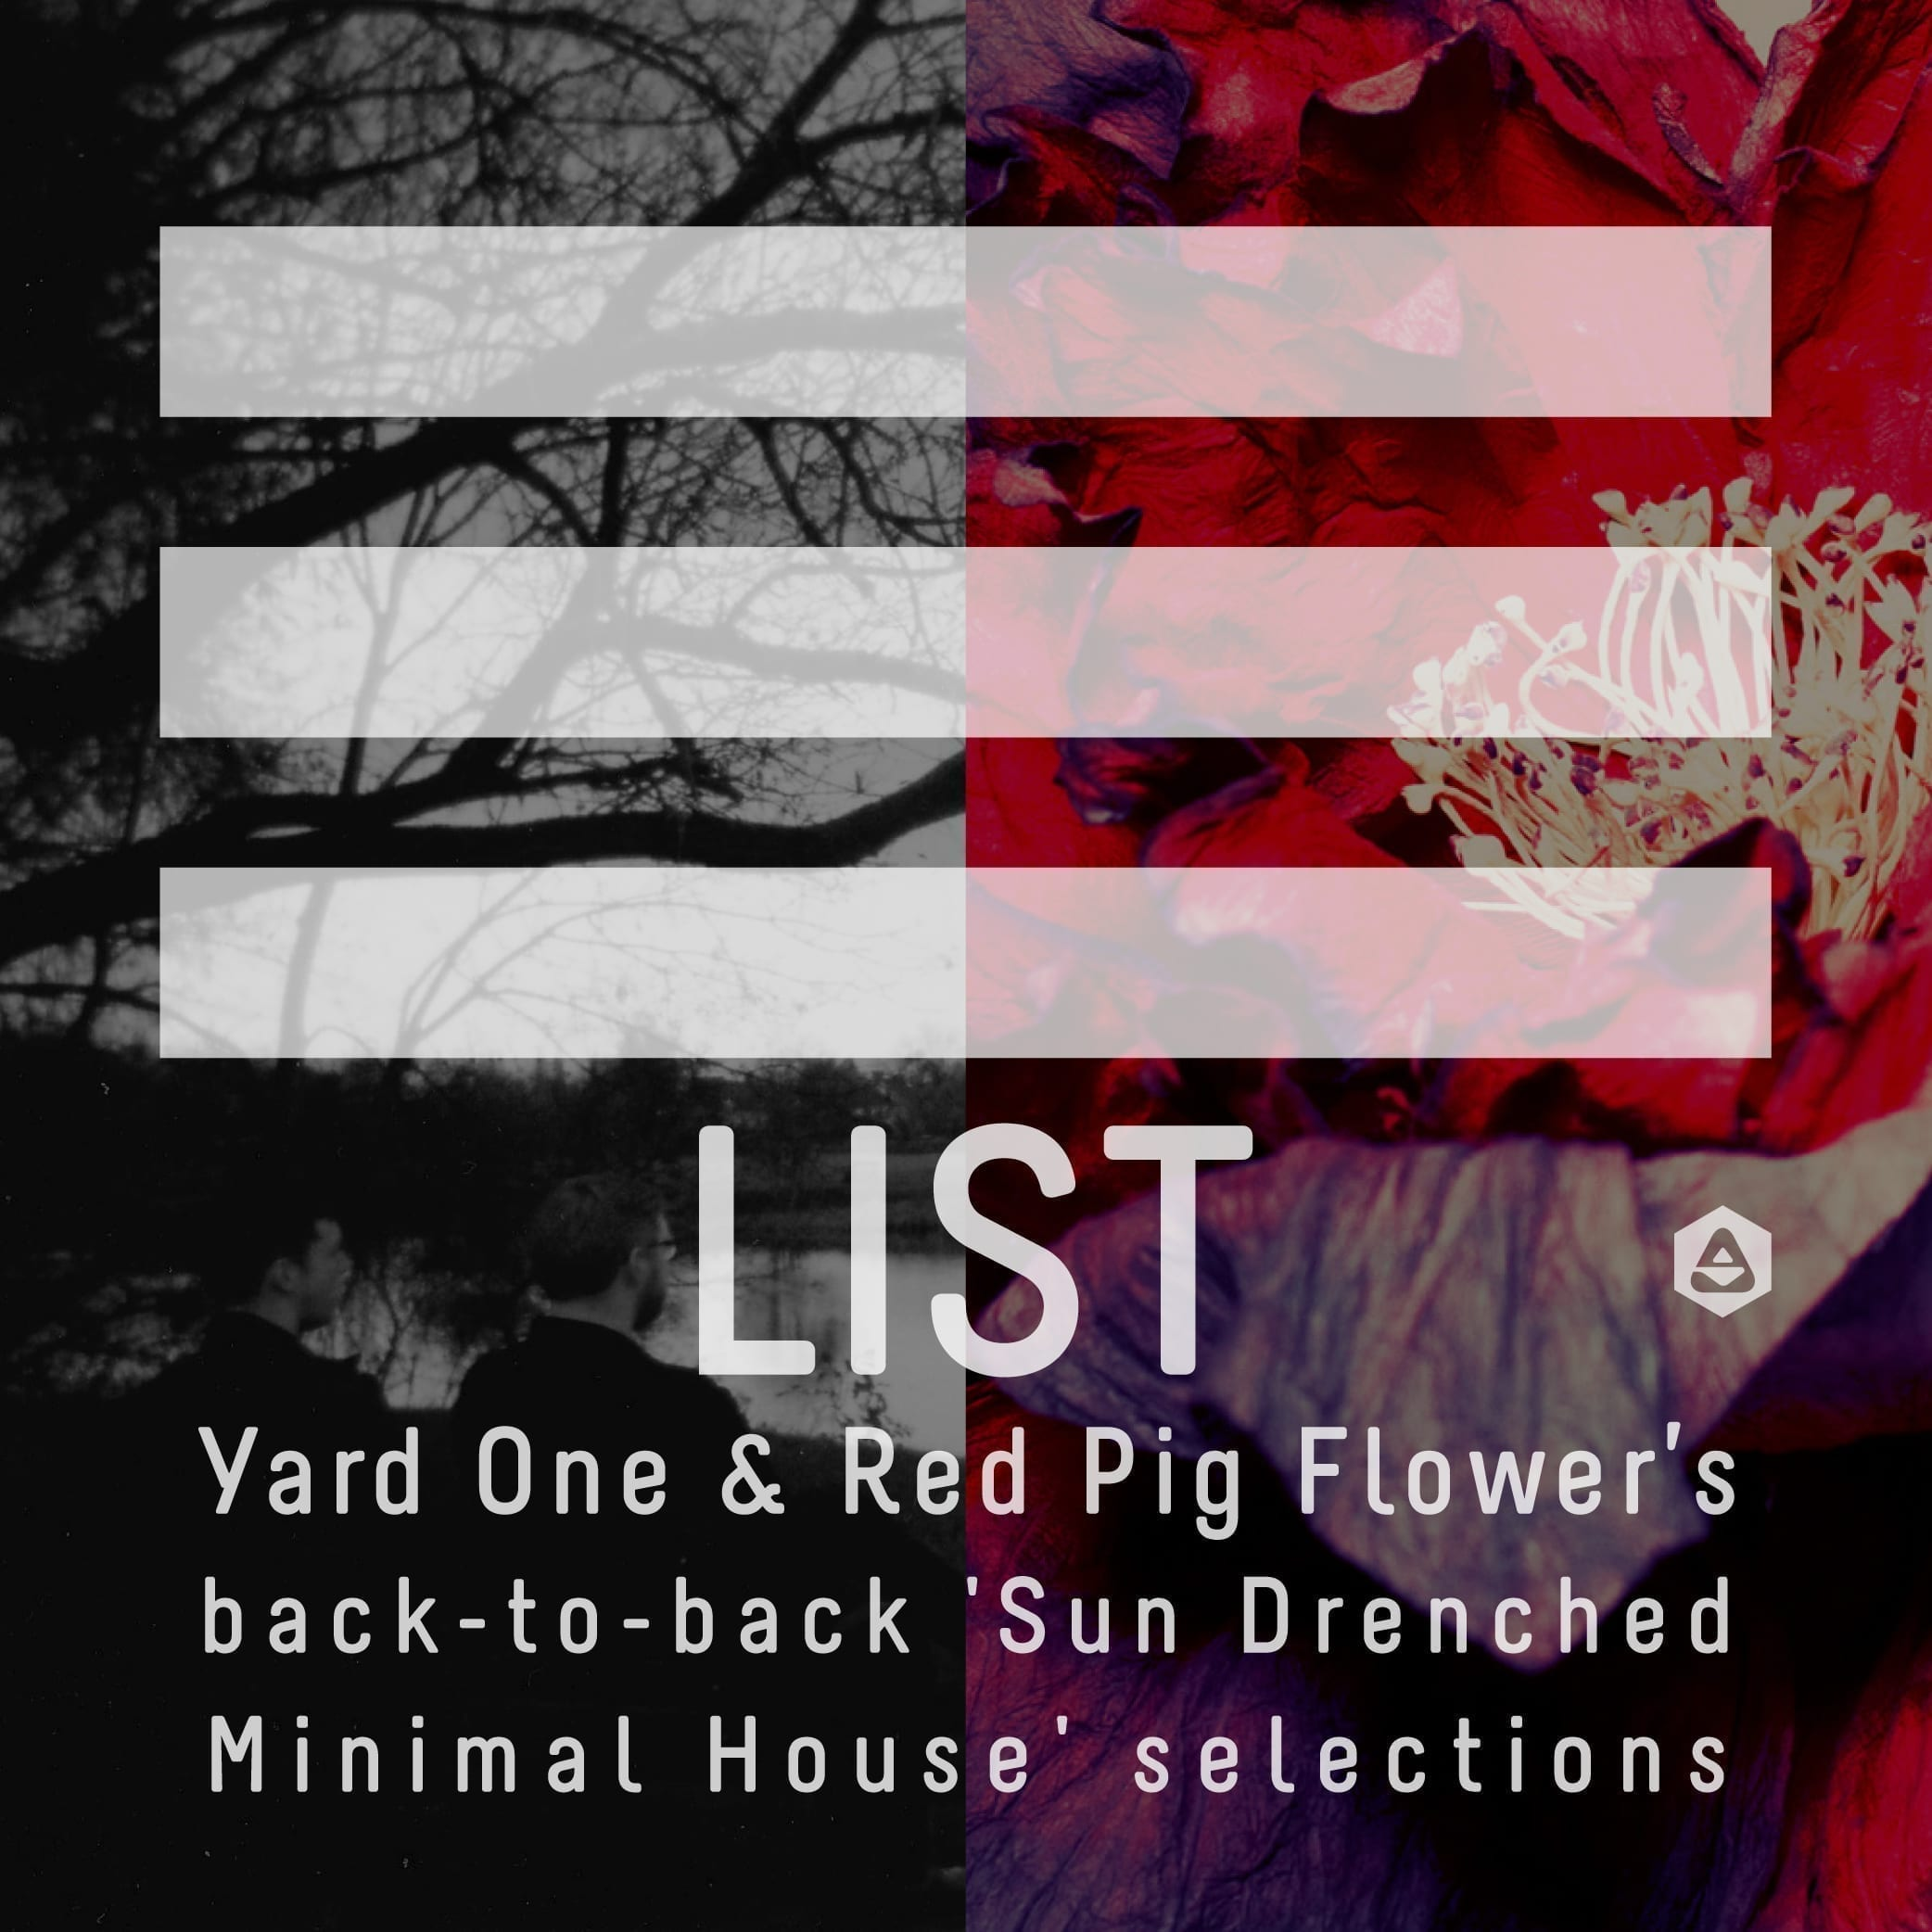 Yard One & Red Pig Flower's back-to-back 'Sun Drenched Minimal House' selections